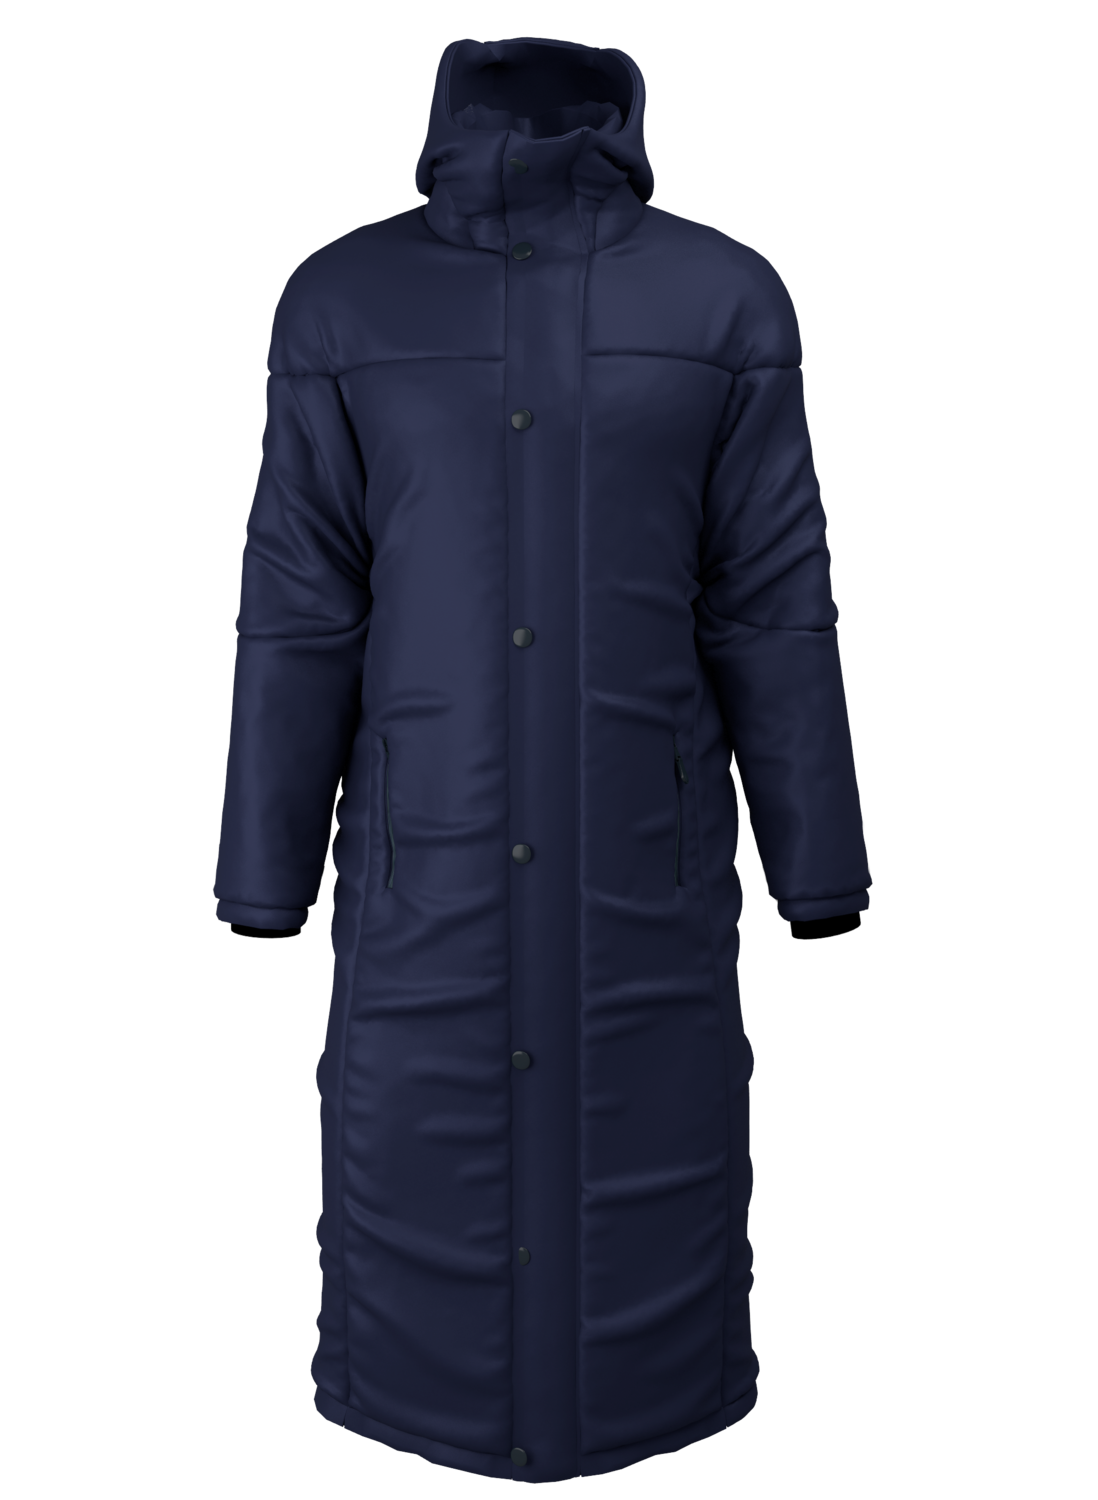 The Downs Bench coat